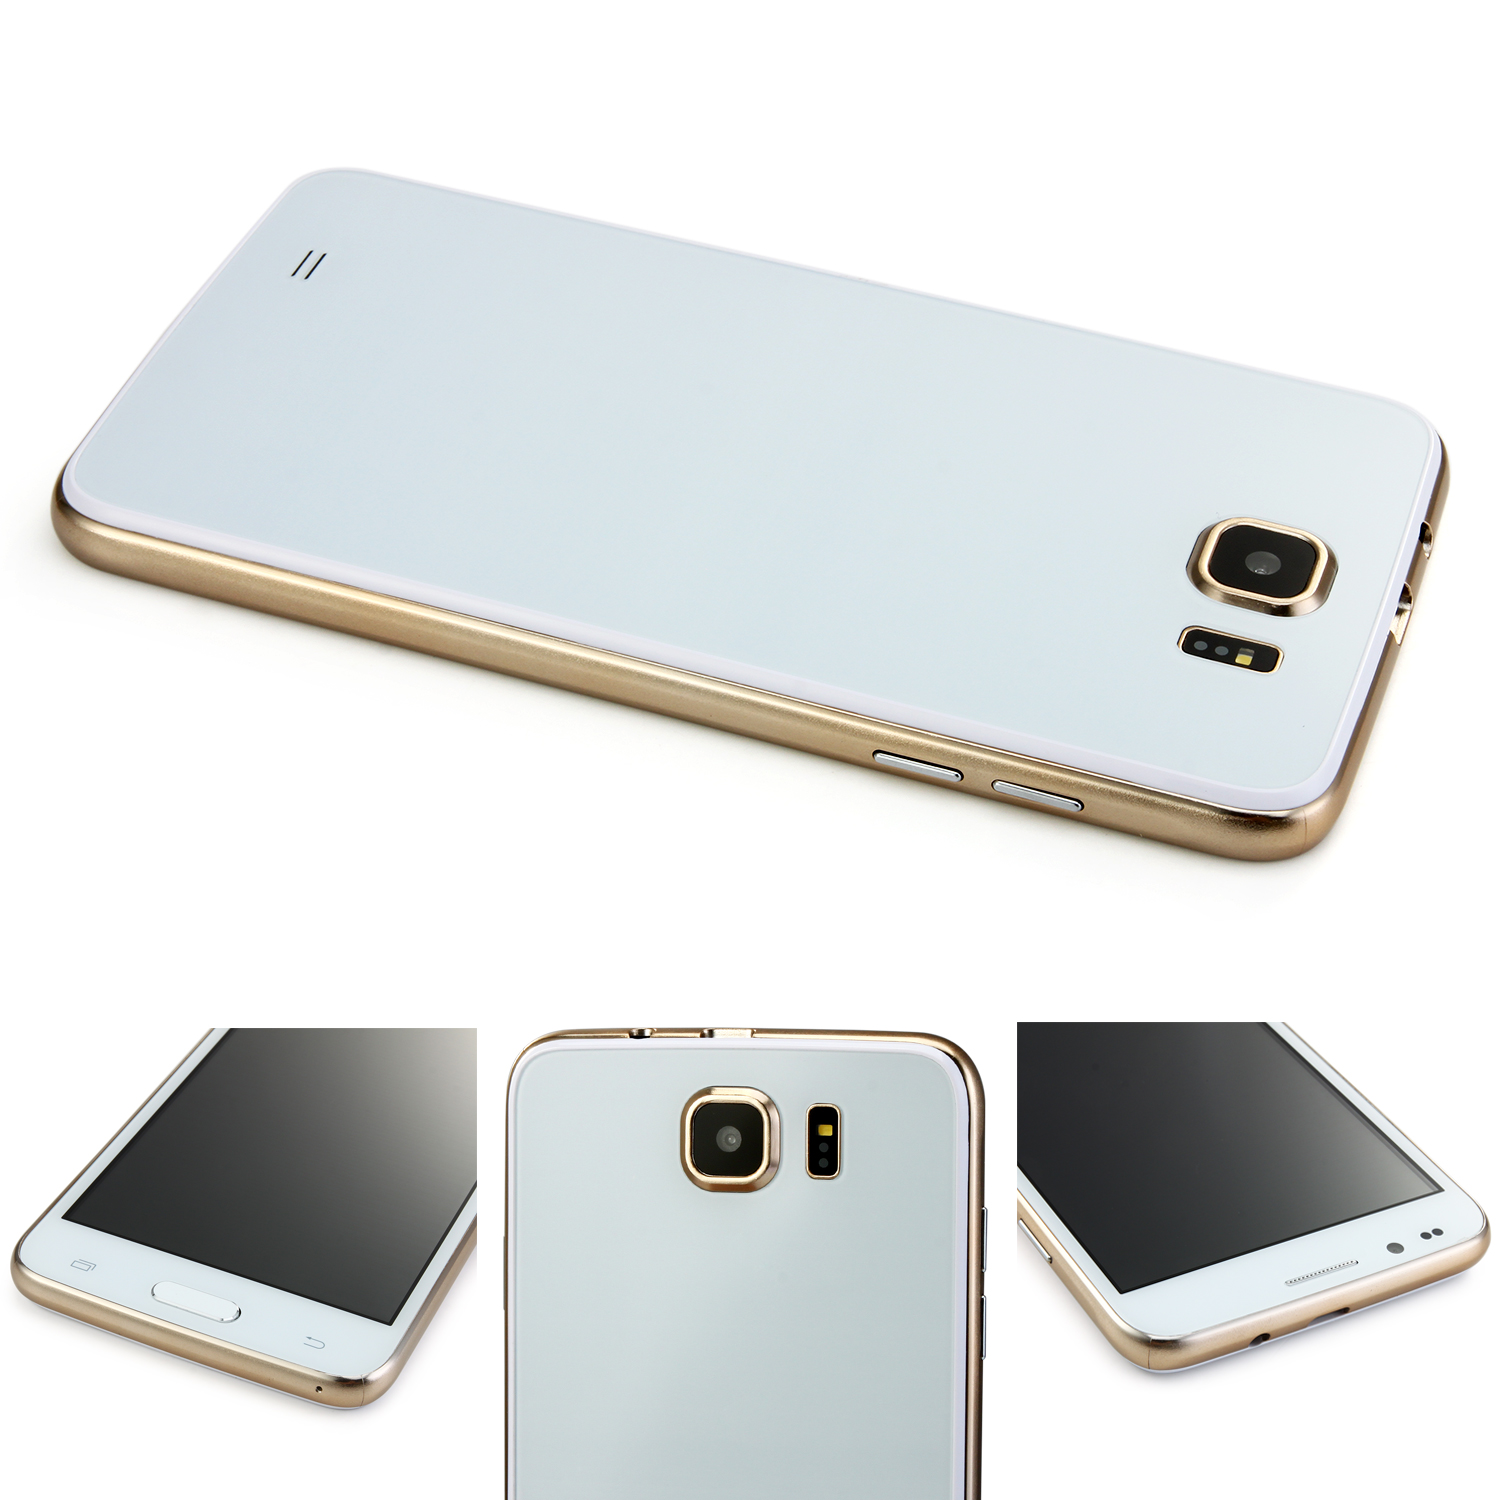 Tengda S6 Smartphone 5.0 Inch MTK6572M Dual Core Android 4.4 GPS White